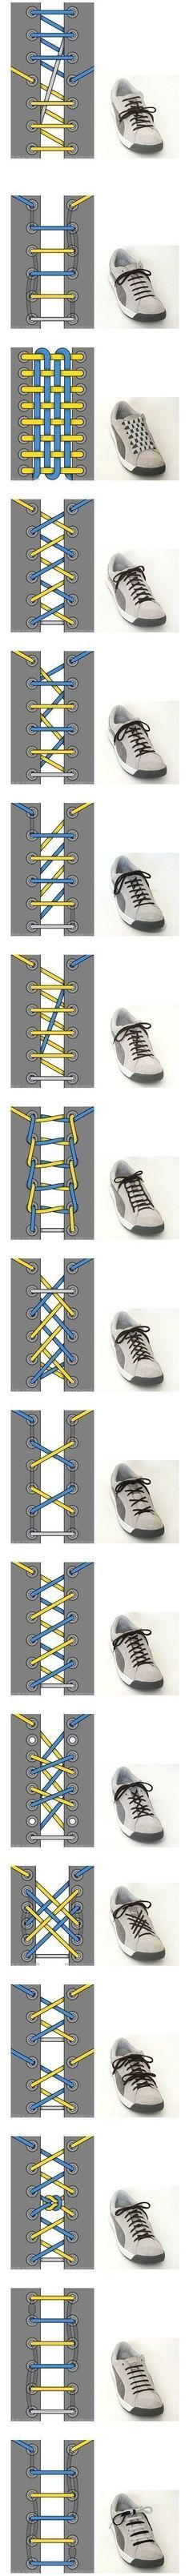 Lacing instructions.